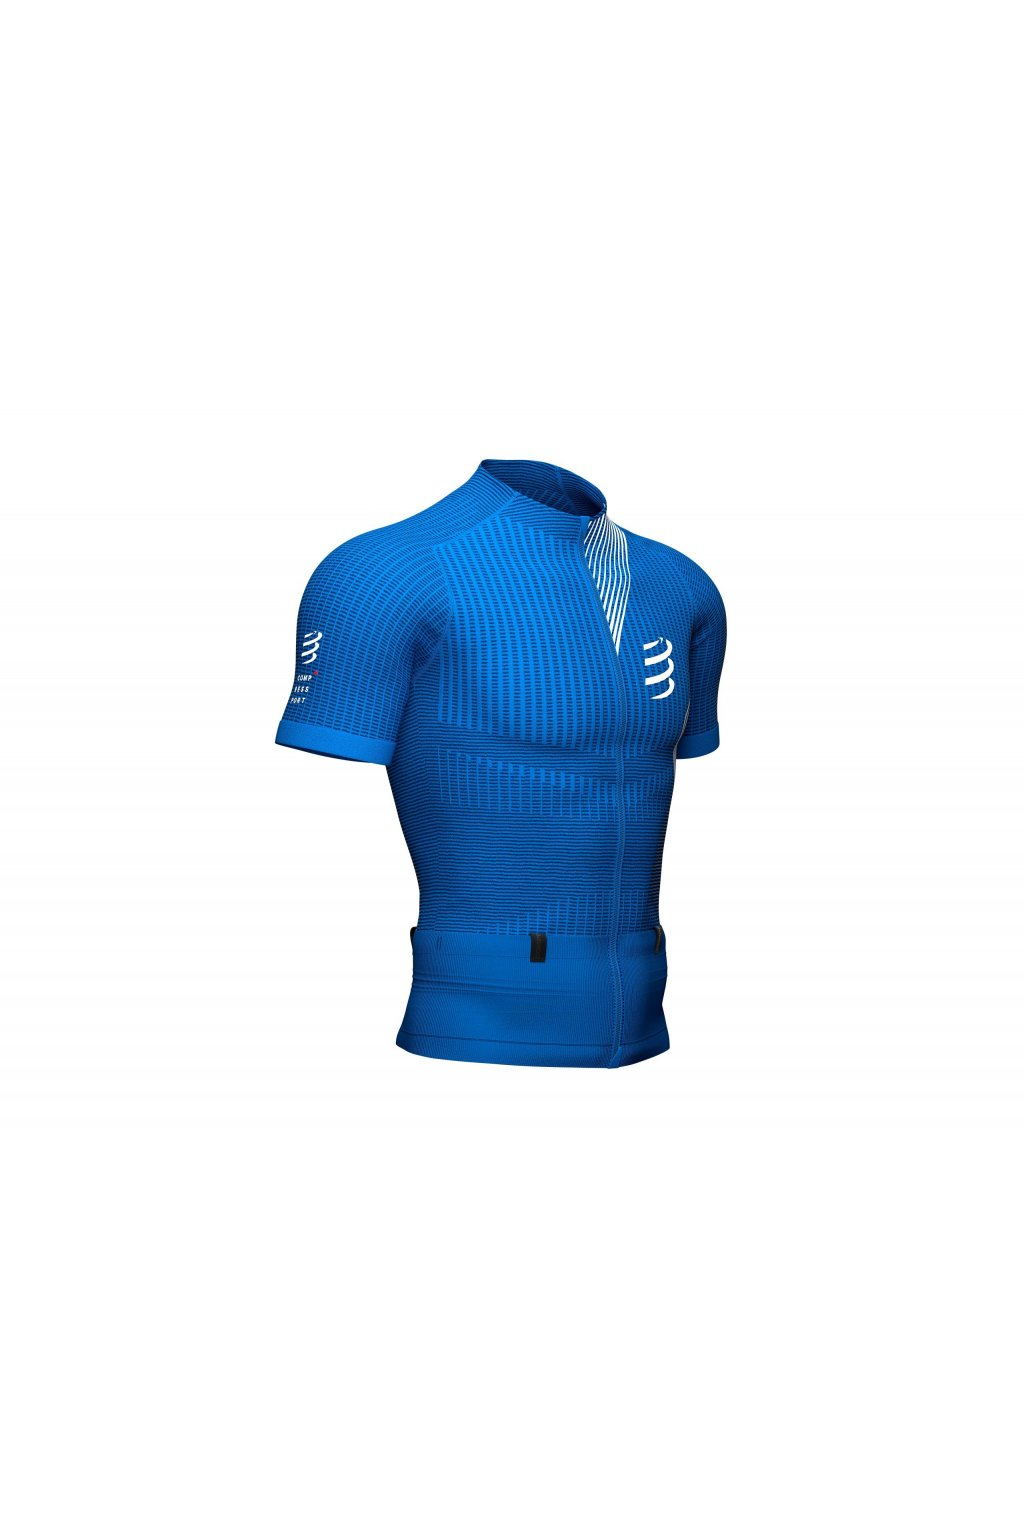 trail postural compression tshirt top blue lolite